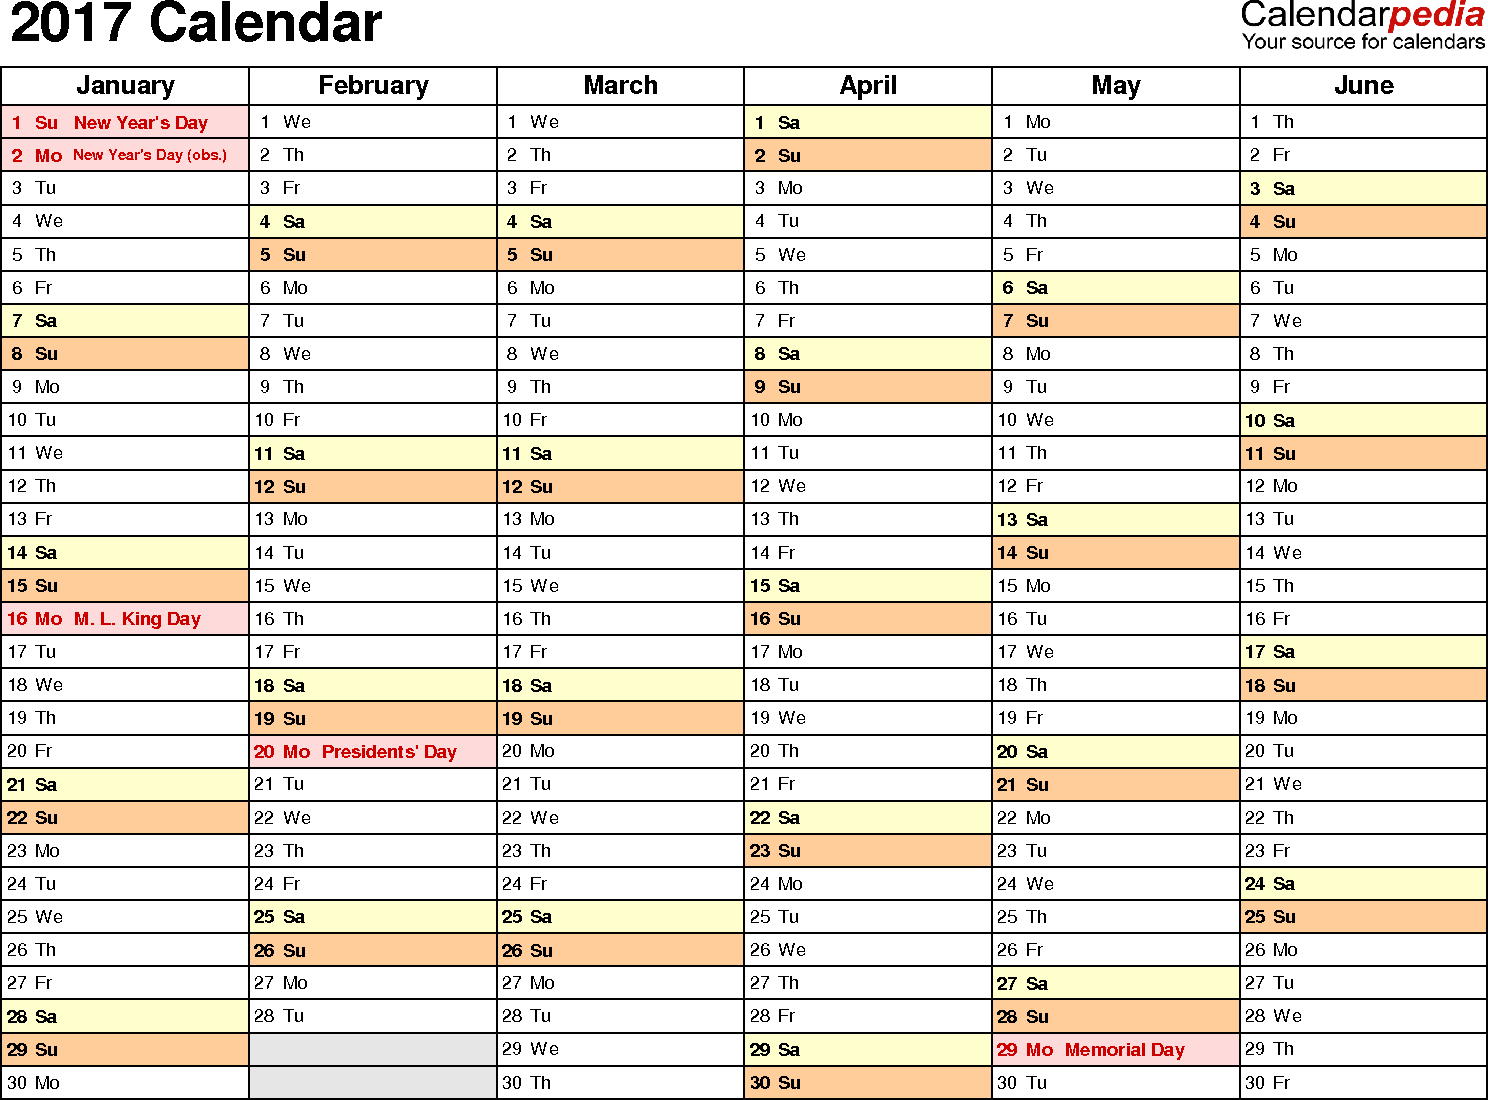 Ediblewildsus  Winning  Calendar  Download  Free Printable Excel Templates Xls With Handsome Template   Calendar For Excel Months Horizontally  Pages Landscape Orientation With Amusing How To Create A Dropdown Box In Excel Also Convert Excel Spreadsheet To Calendar In Addition Protect Worksheet In Excel And Dim Vba Excel As Well As How To Bypass Excel Password Additionally Excel Series Formula From Calendarpediacom With Ediblewildsus  Handsome  Calendar  Download  Free Printable Excel Templates Xls With Amusing Template   Calendar For Excel Months Horizontally  Pages Landscape Orientation And Winning How To Create A Dropdown Box In Excel Also Convert Excel Spreadsheet To Calendar In Addition Protect Worksheet In Excel From Calendarpediacom